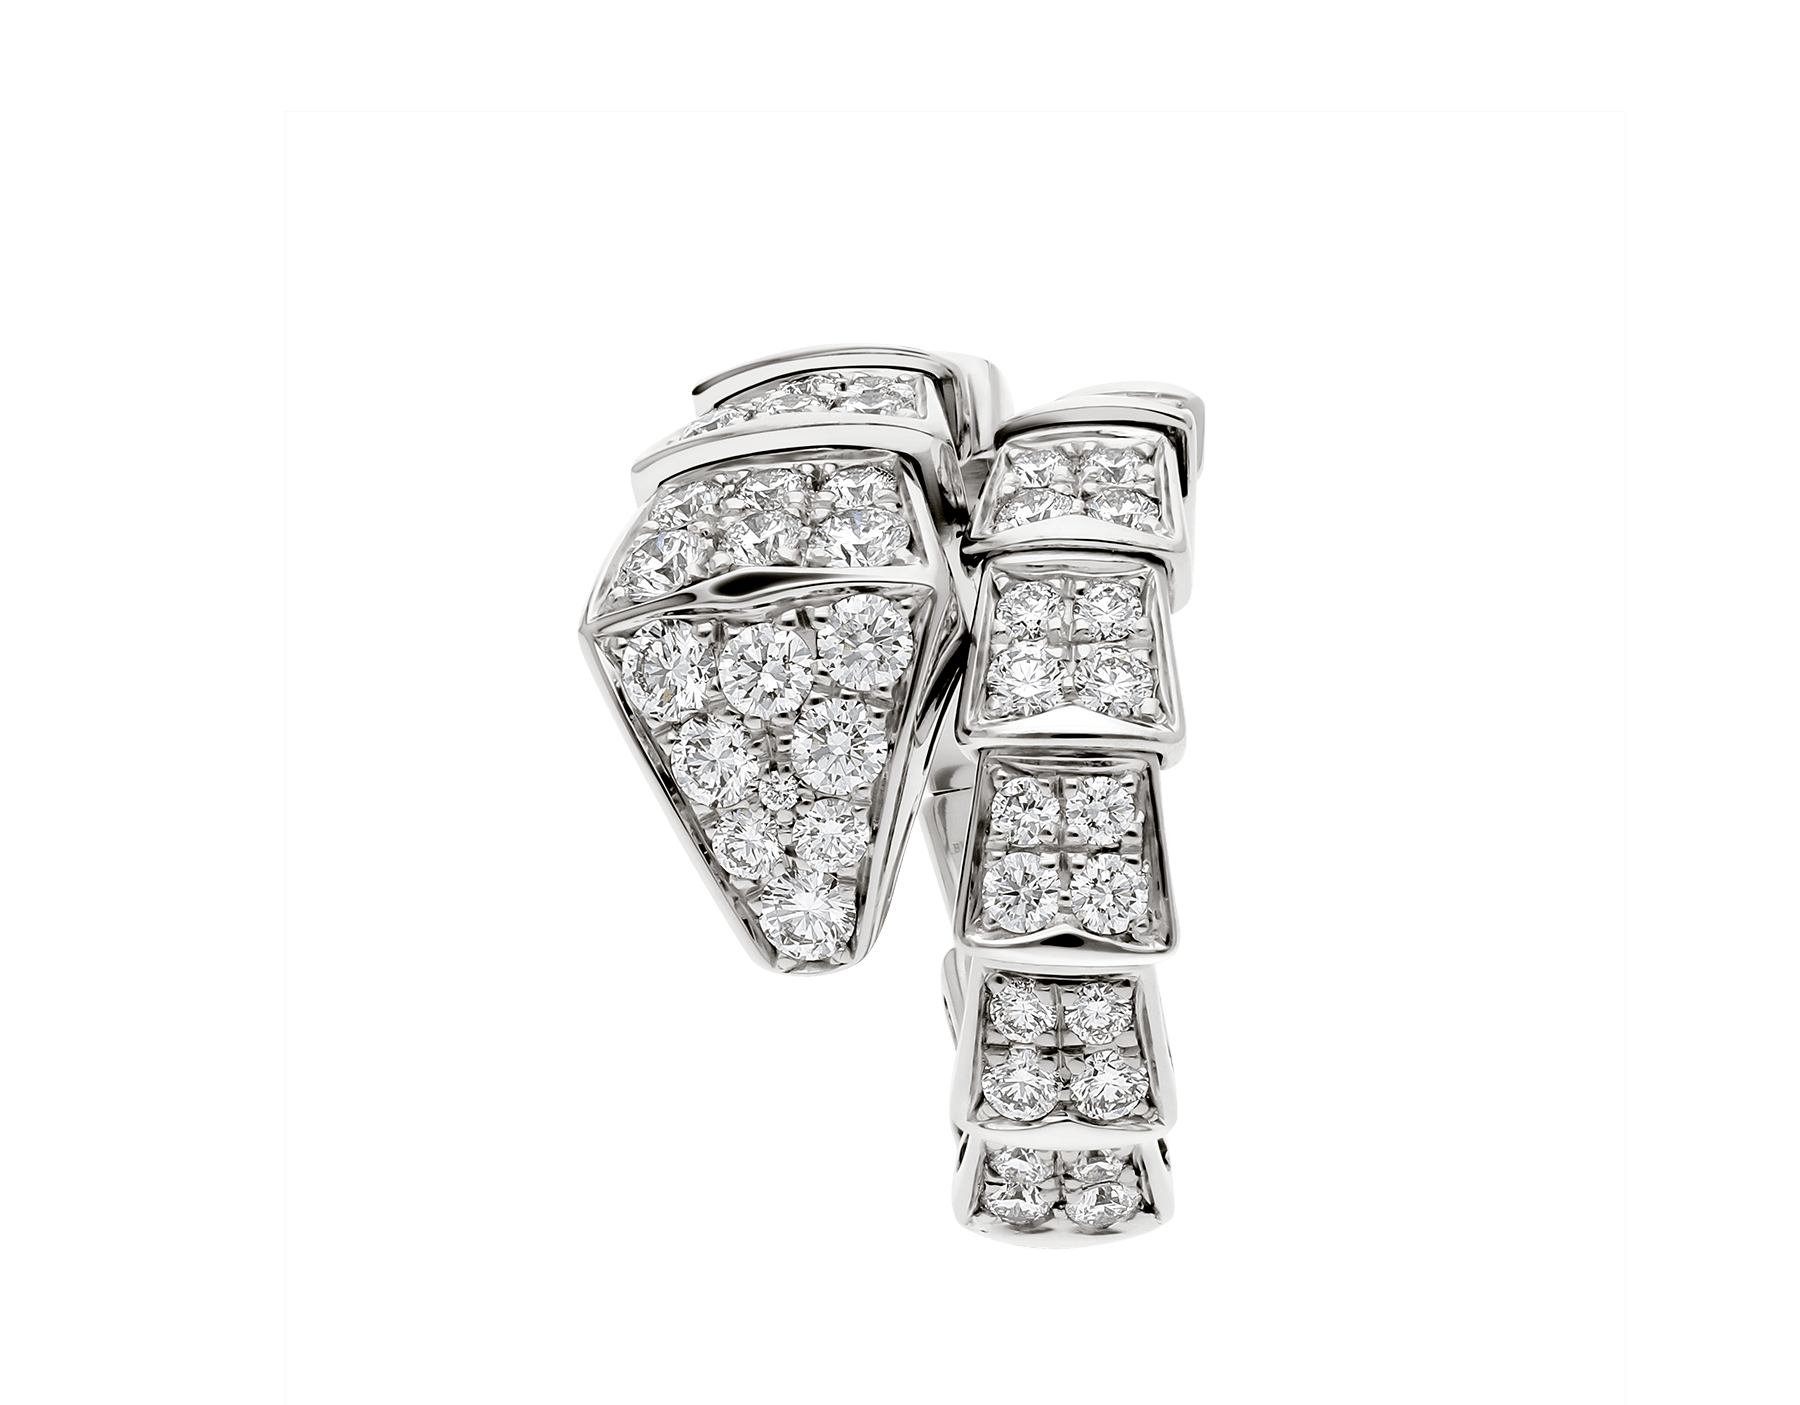 Serpenti Viper one-coil ring in 18 kt white gold, set with full pavé diamonds. AN855116 image 3